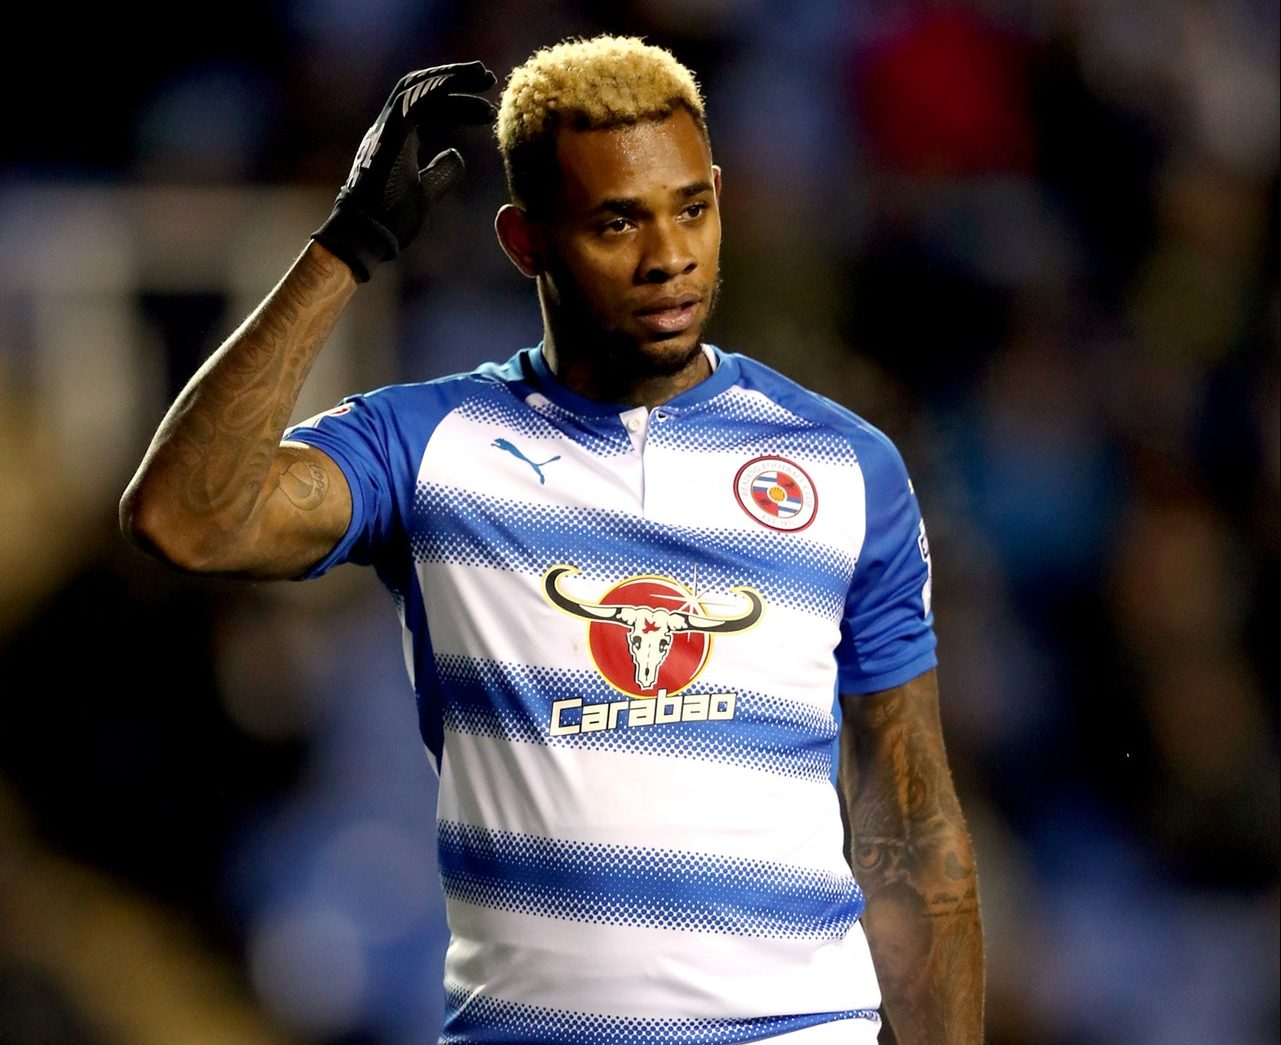 Bacuna Vows To Fight For Bluebirds